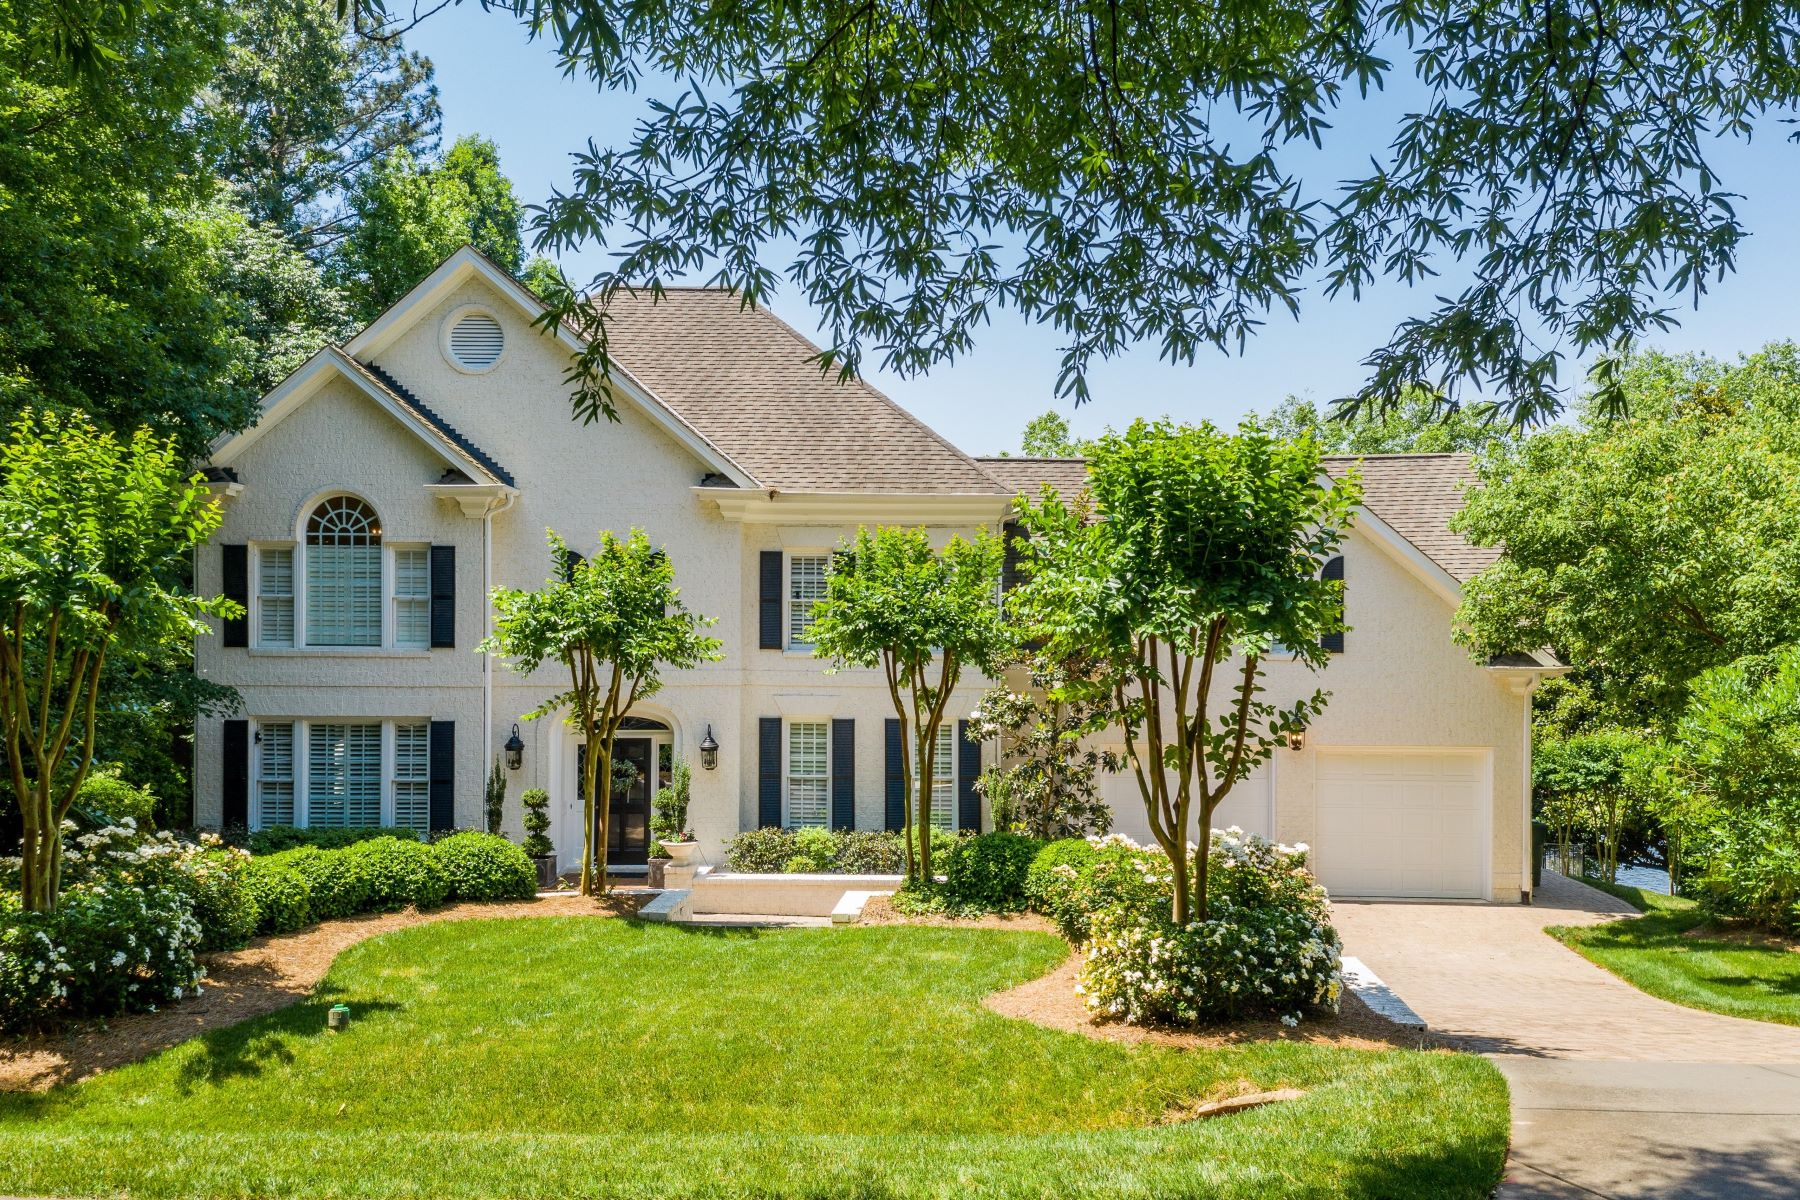 Single Family Homes for Sale at Lochmere Lake Estate 222 Lochwood West Drive Cary, North Carolina 27518 United States